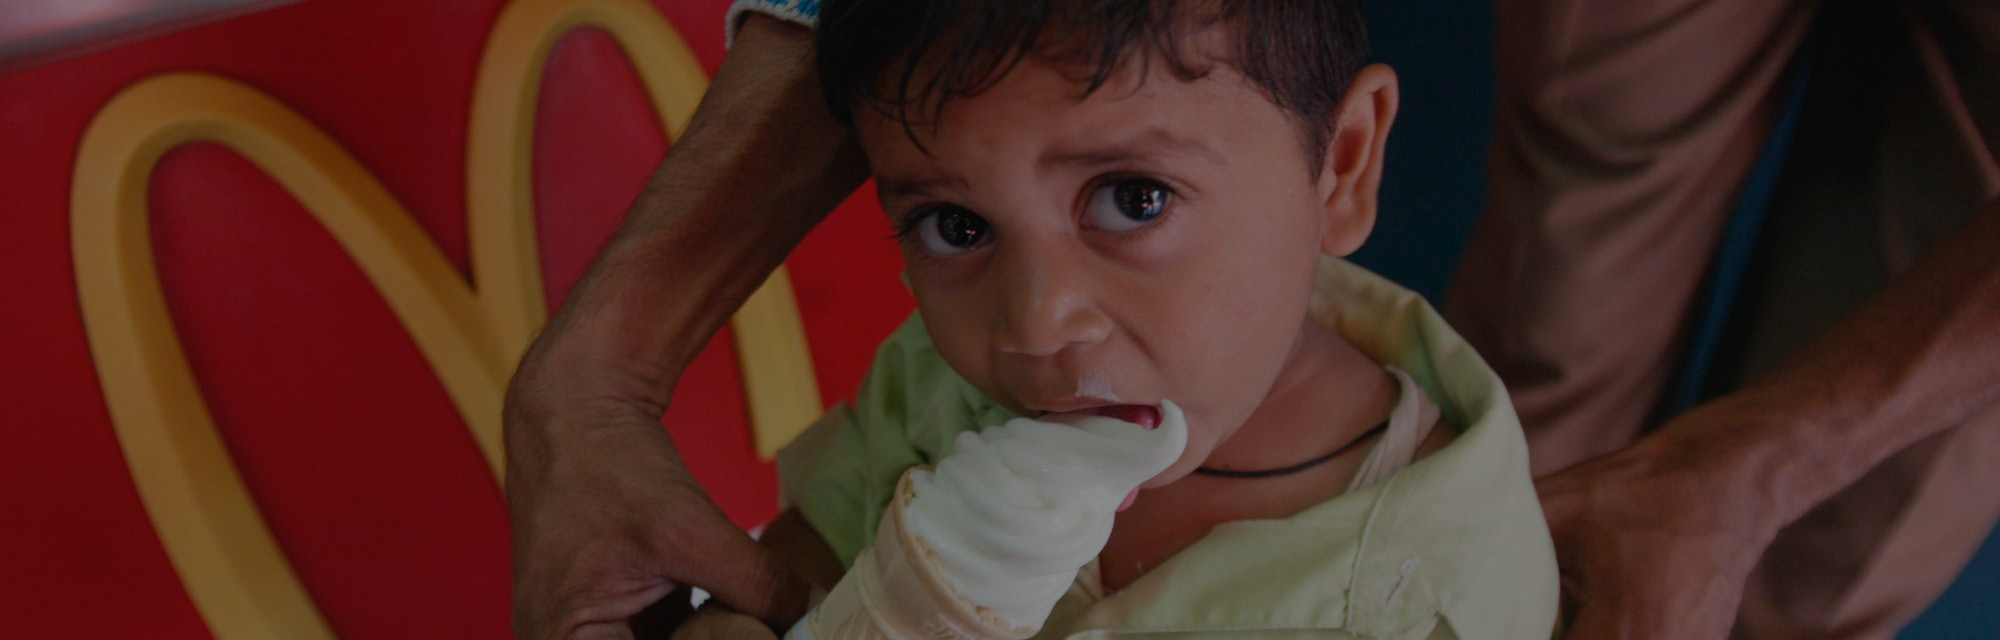 A Child eating ice cream at a McDonalds outlet, India. (Photo by: Salman Quraishi/IndiaPictures/Univ...